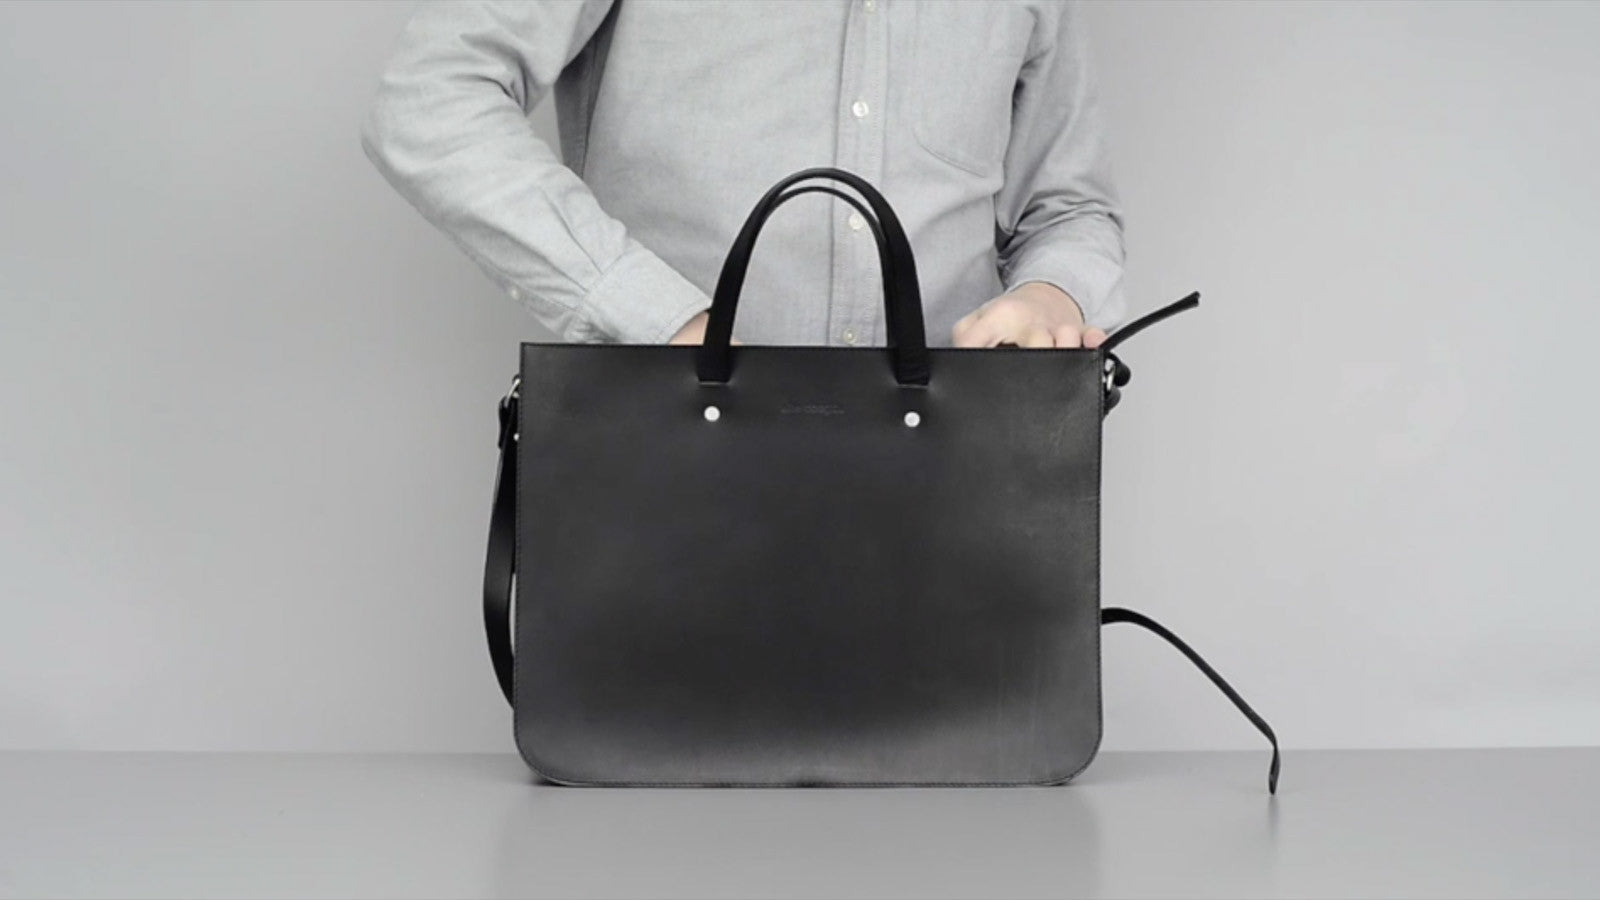 Briefcase Tote Video